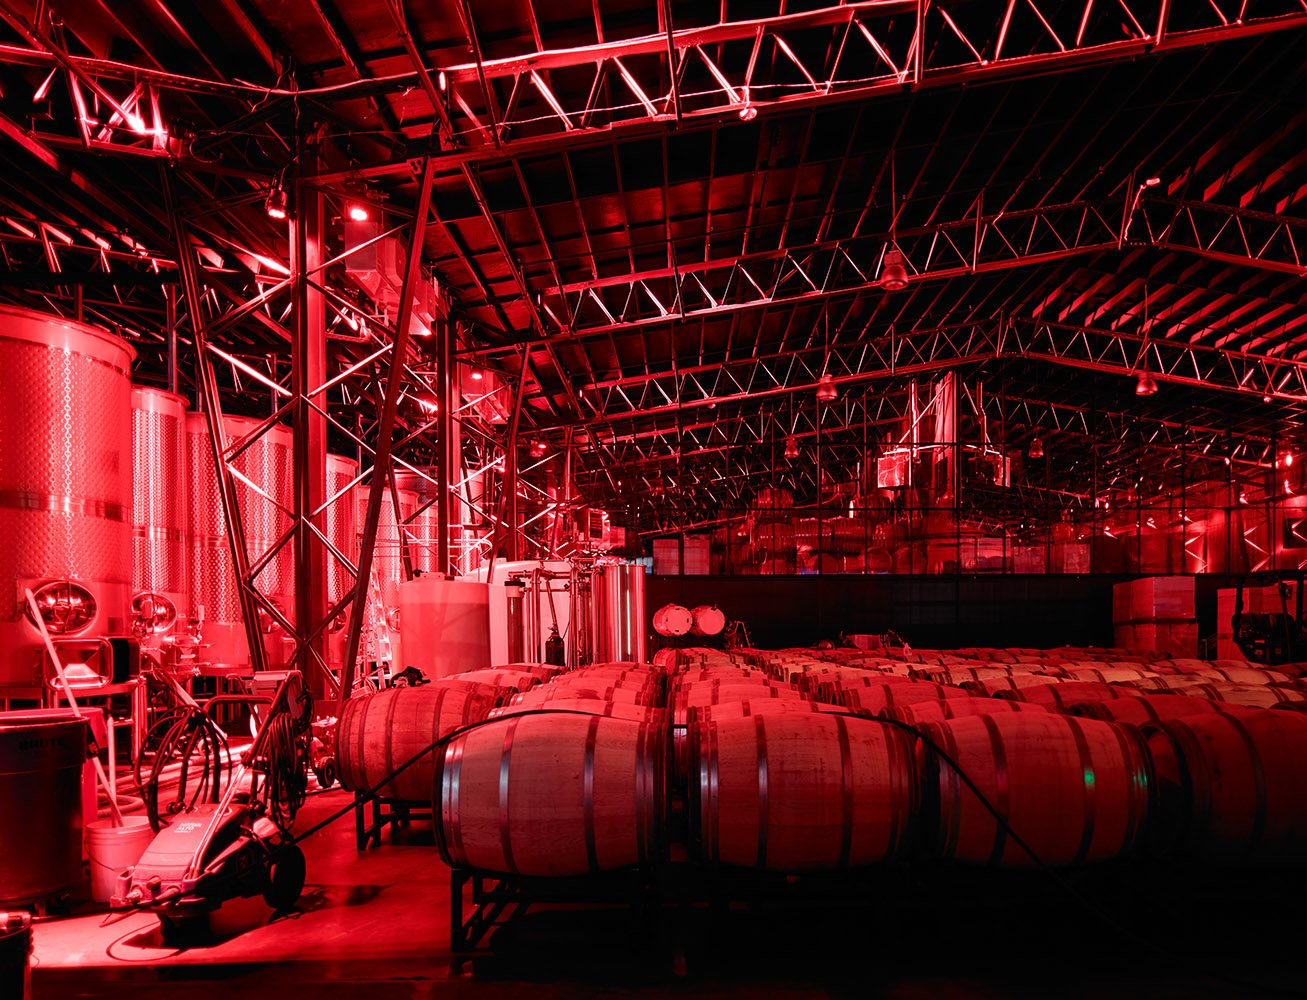 Contiguous open-structure steel truss warehouse for grape crush, barrel storage and bottling.